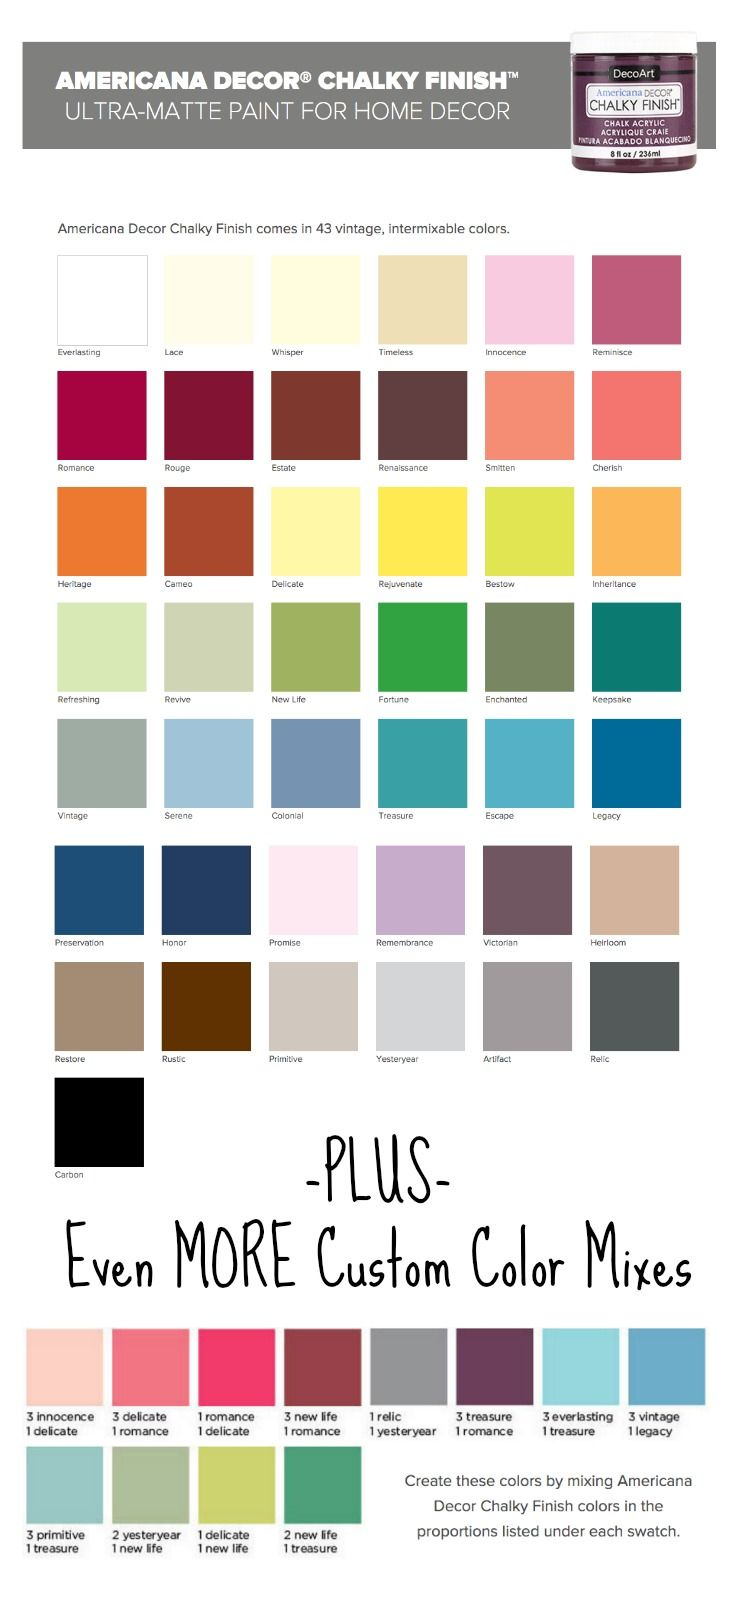 Folk art acrylic paint color chart - Americana Decor Chalky Finish Paint Color Selection Updated 2016 Quickly And Easily Refurbish